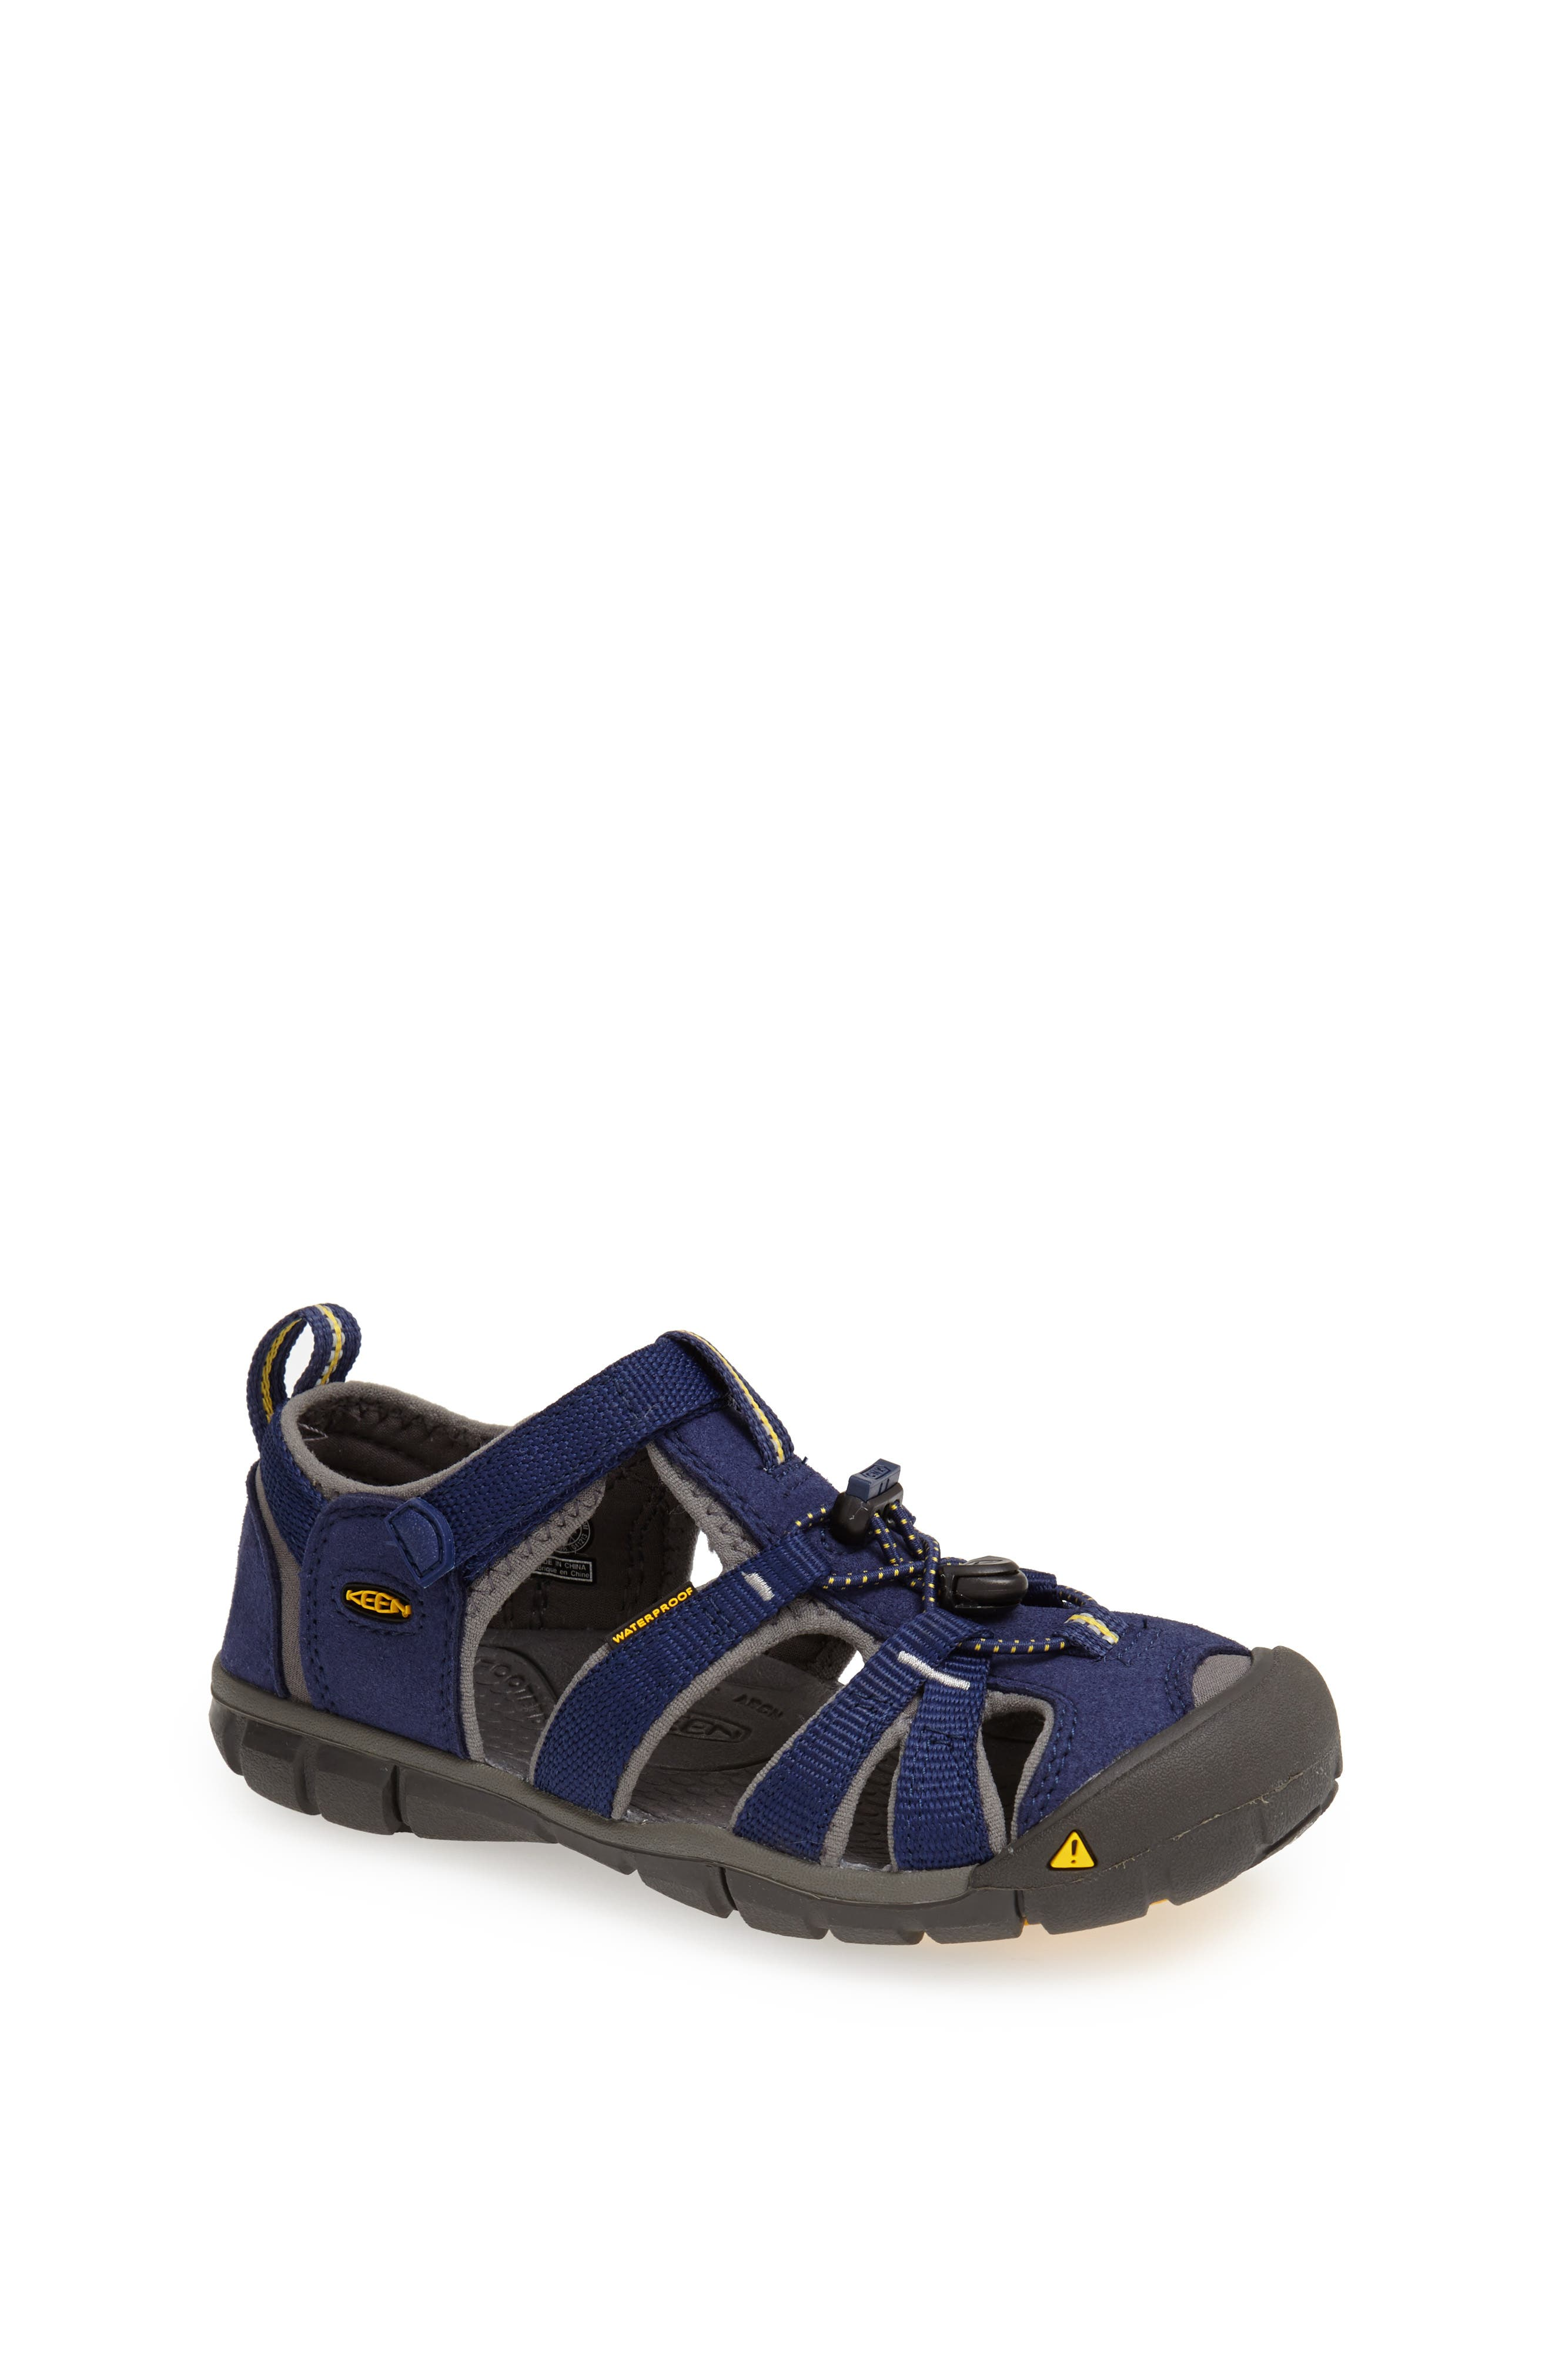 Keen 'Seacamp II' Water Friendly Sandal (Baby, Walker, Toddler, Little Kid & Big Kid)